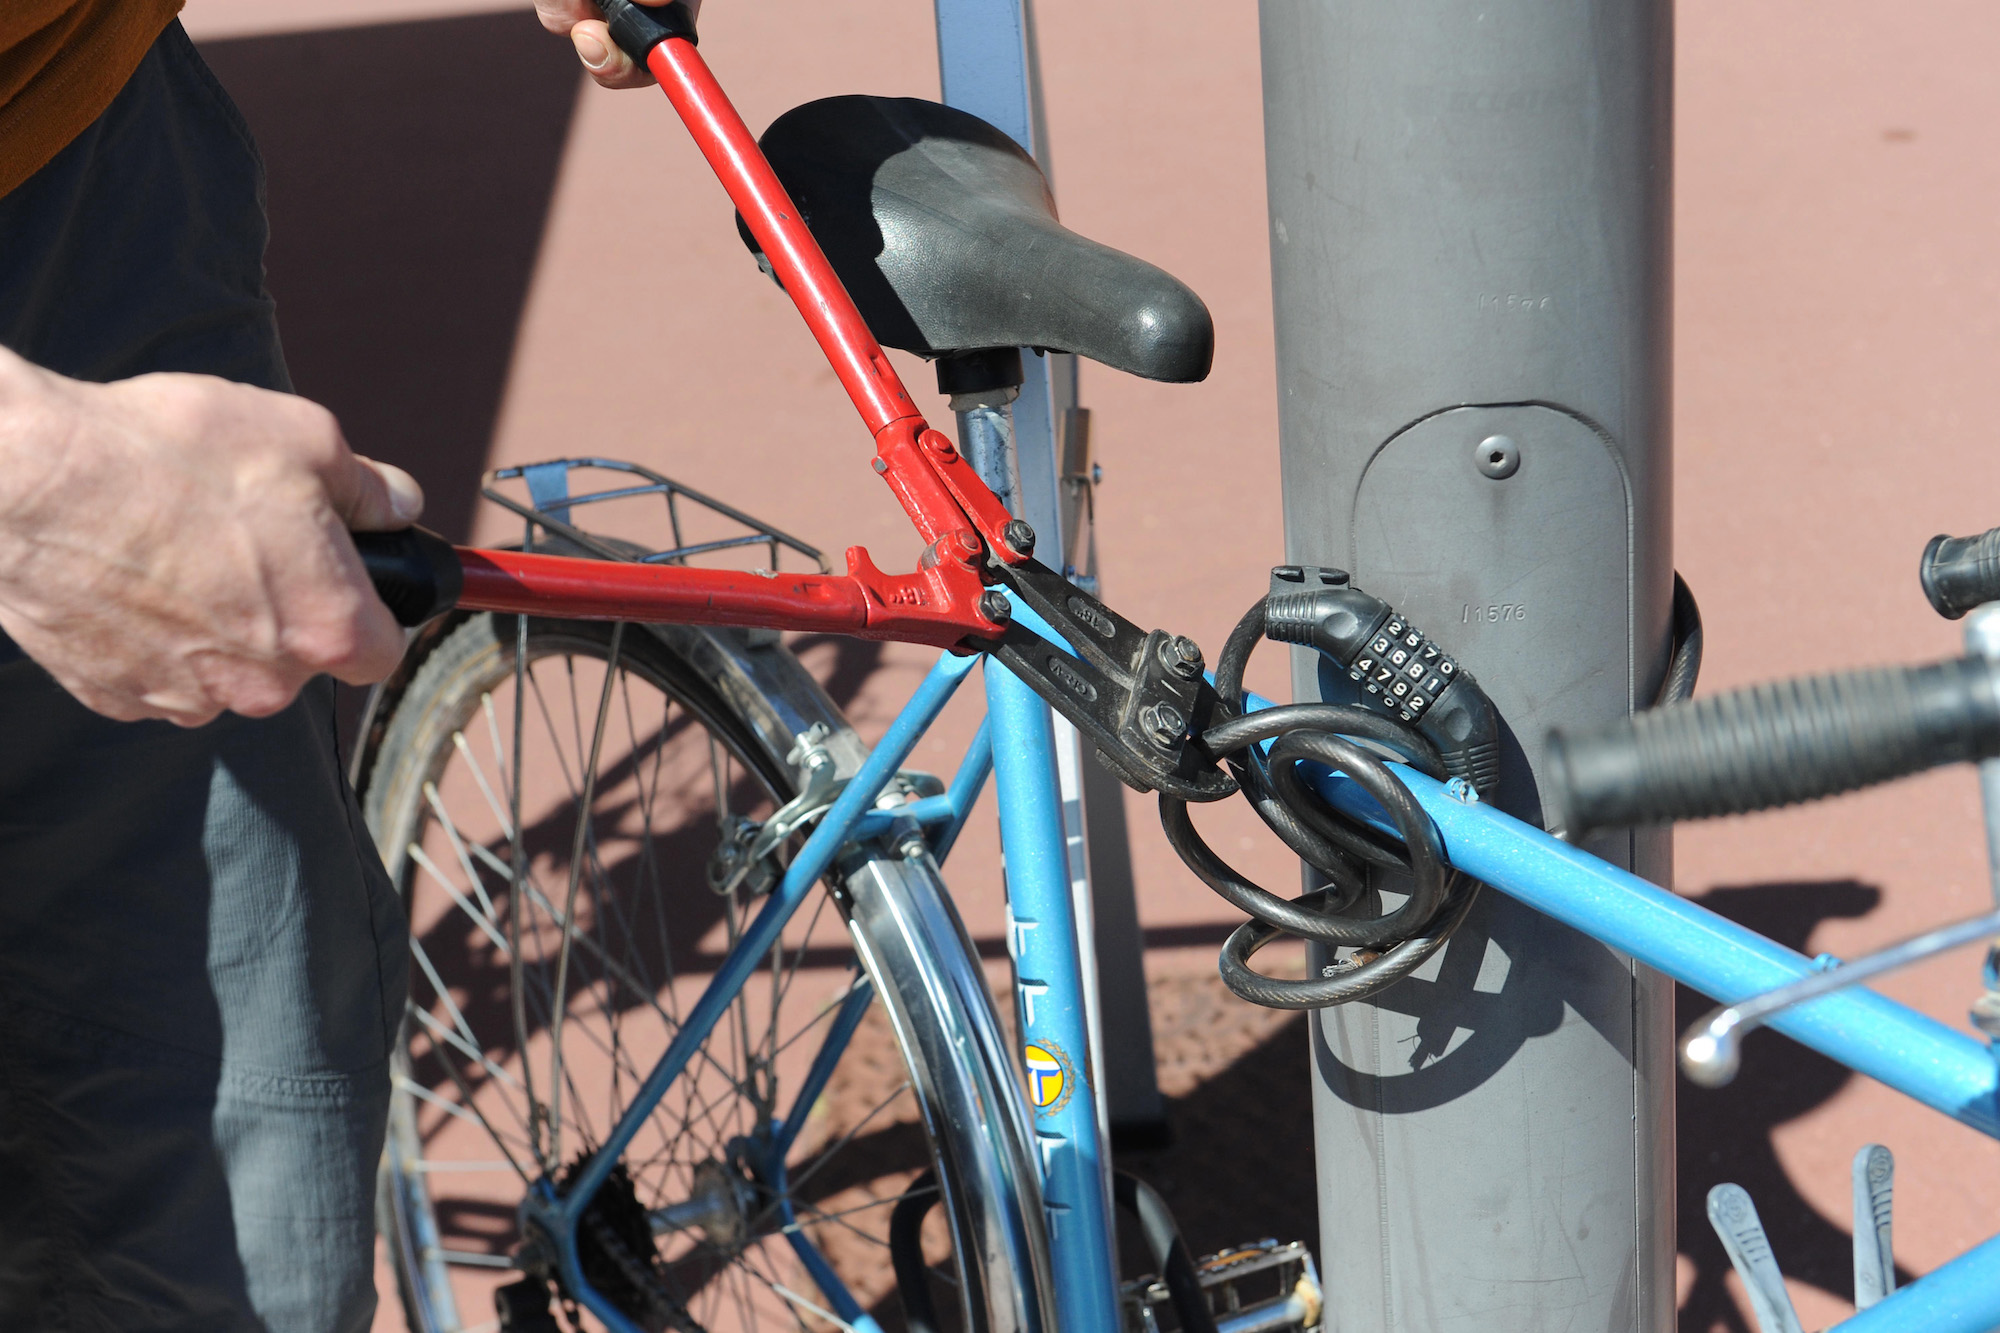 Insurer sees almost 50 per cent increase in bike thefts since lockdown began - Cycling Weekly